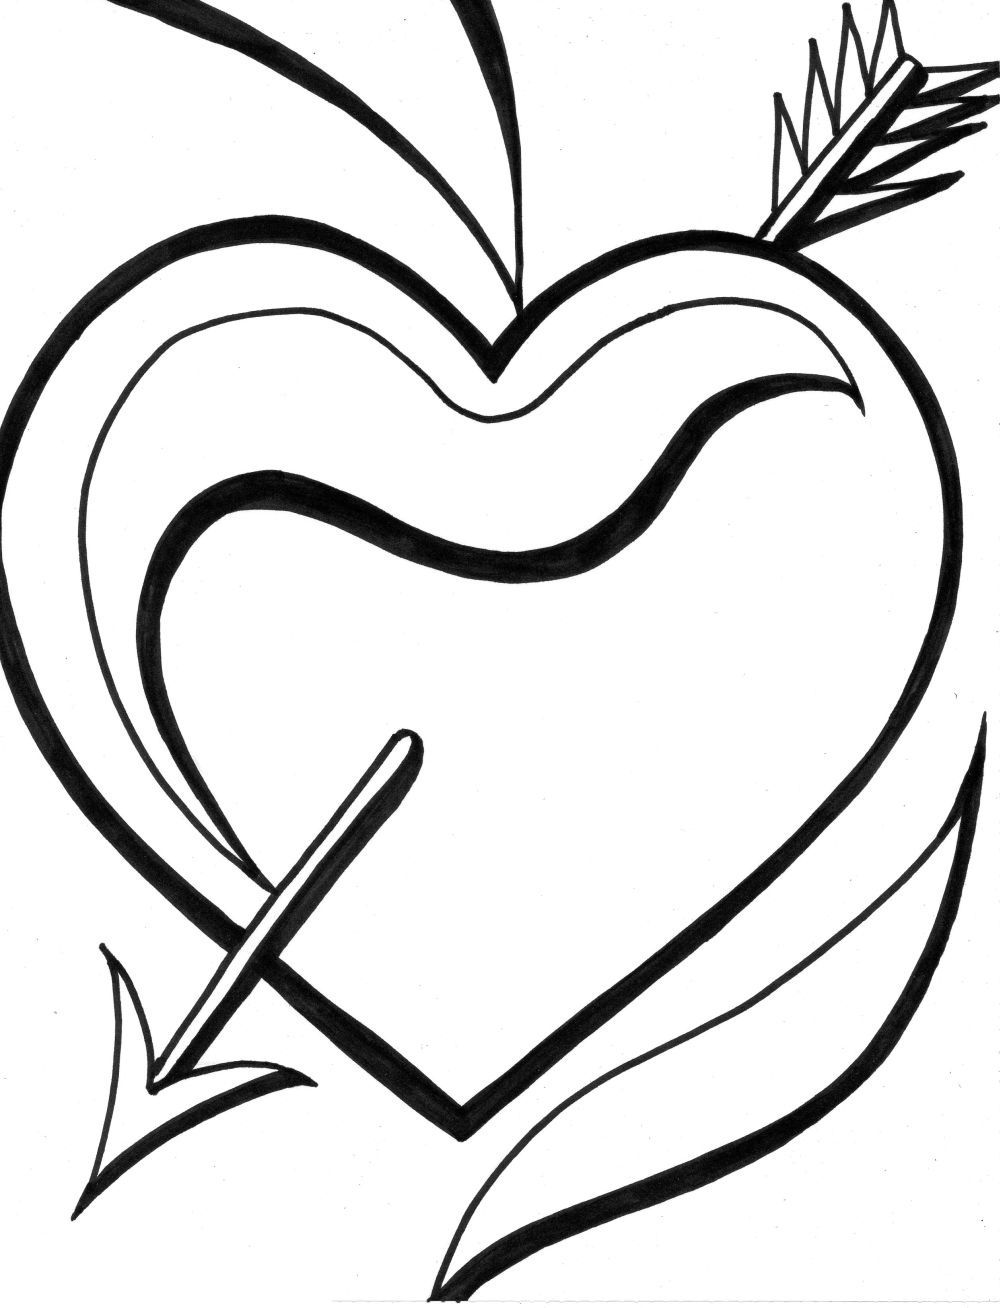 Heart With Arrow Drawing at GetDrawings.com | Free for personal use ...